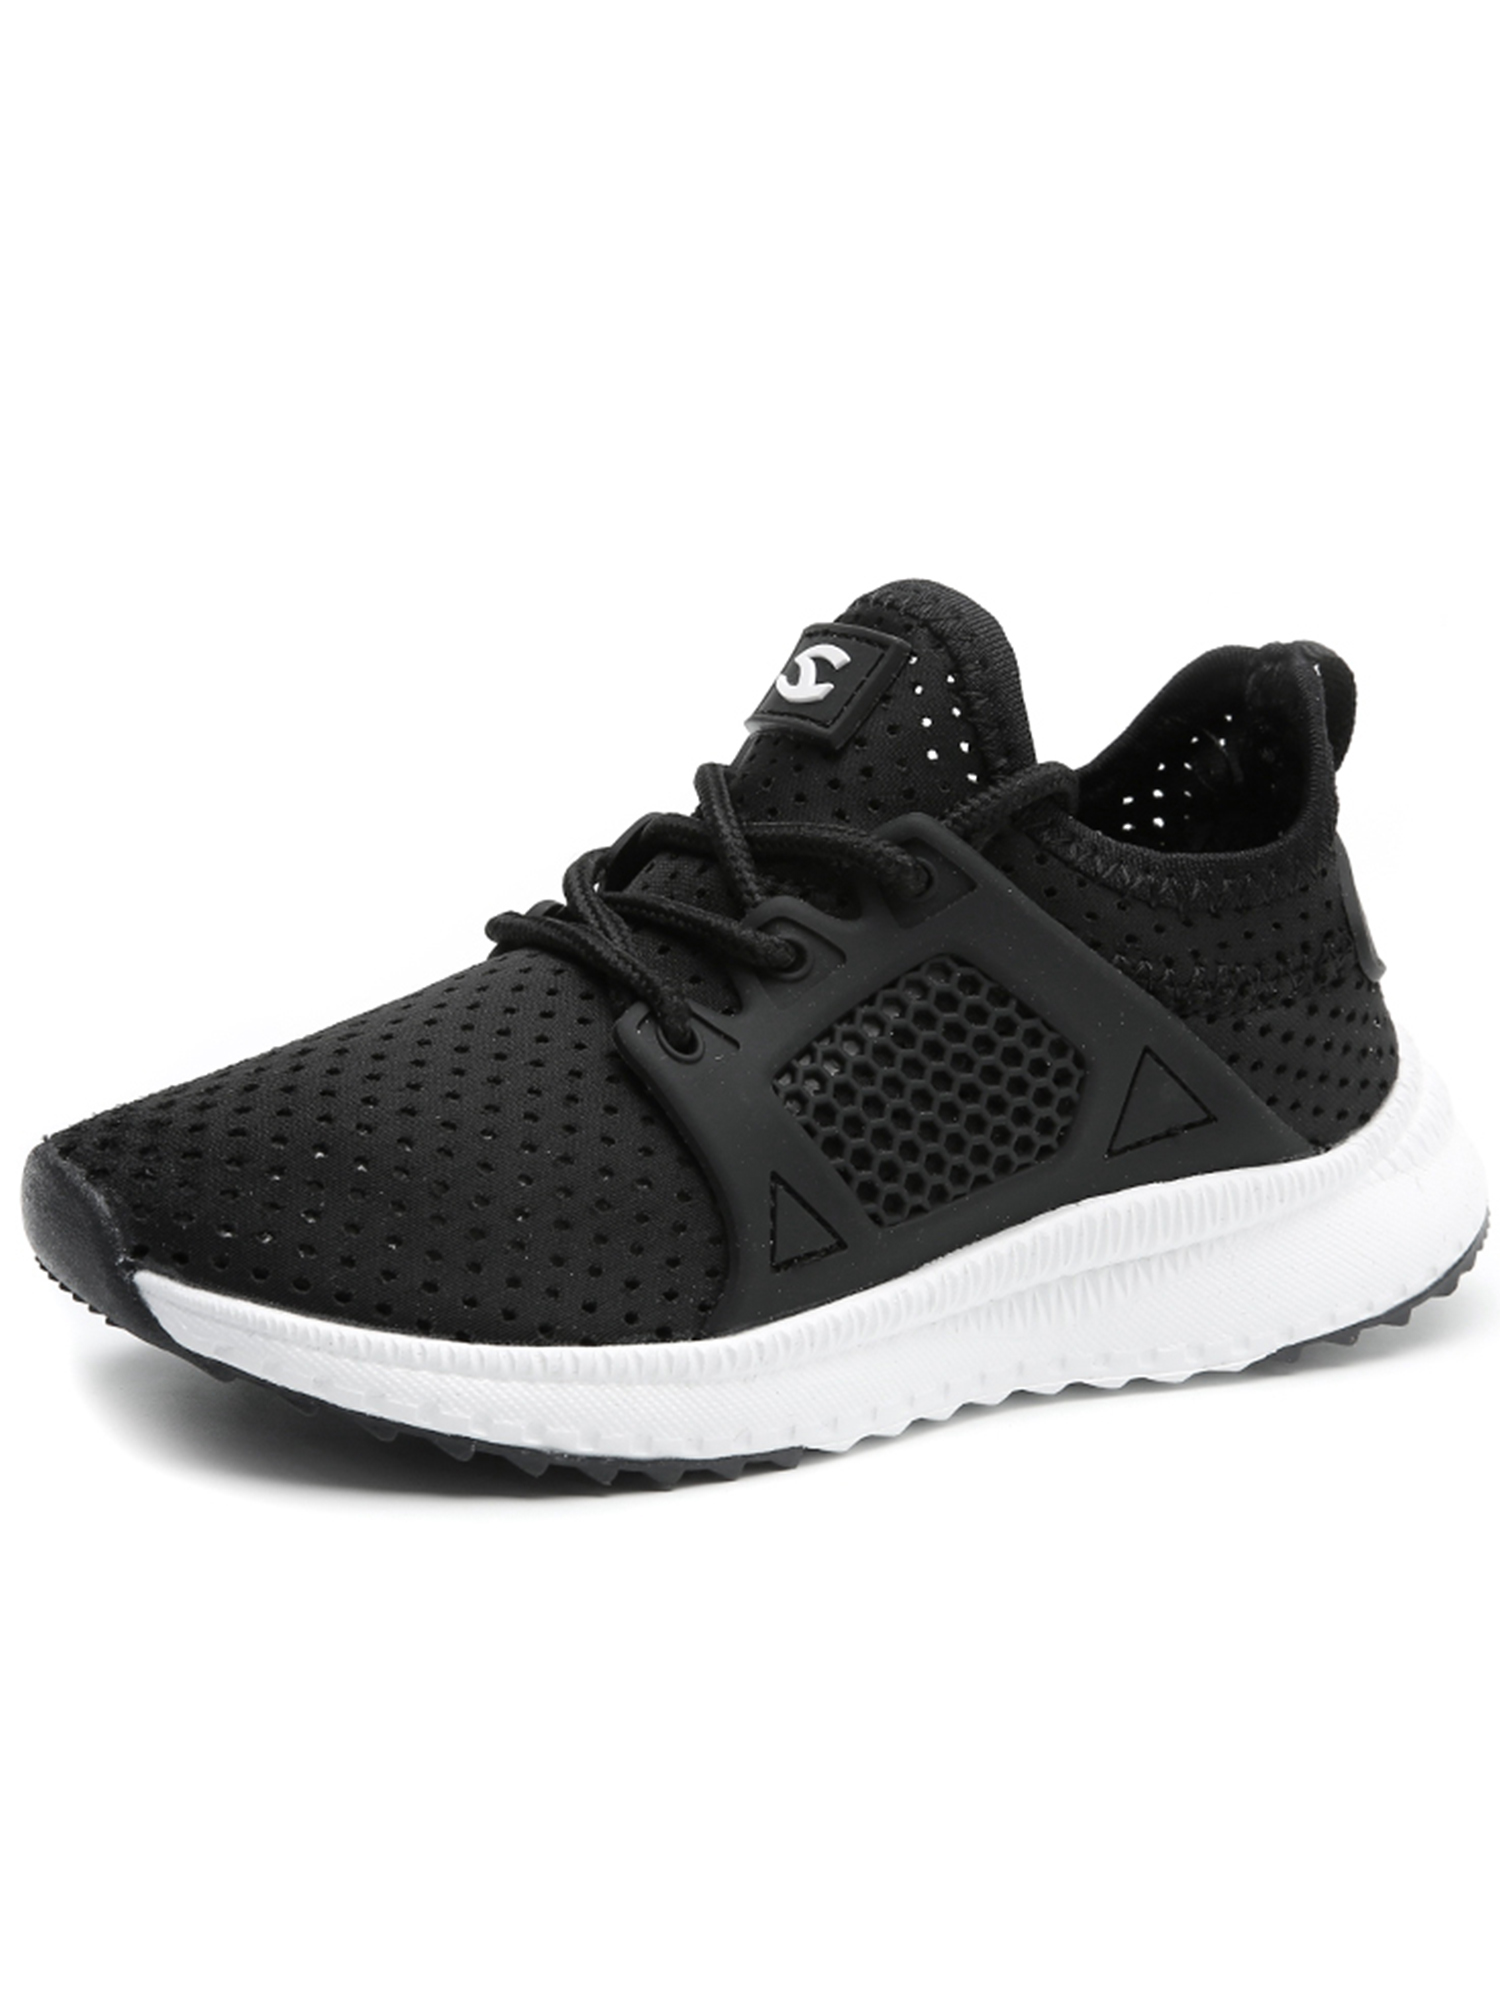 Kids Boys Girls Running Shoes Athletic Comfortable Fashion Lightweight Mesh Slip On Cushion Sneakers